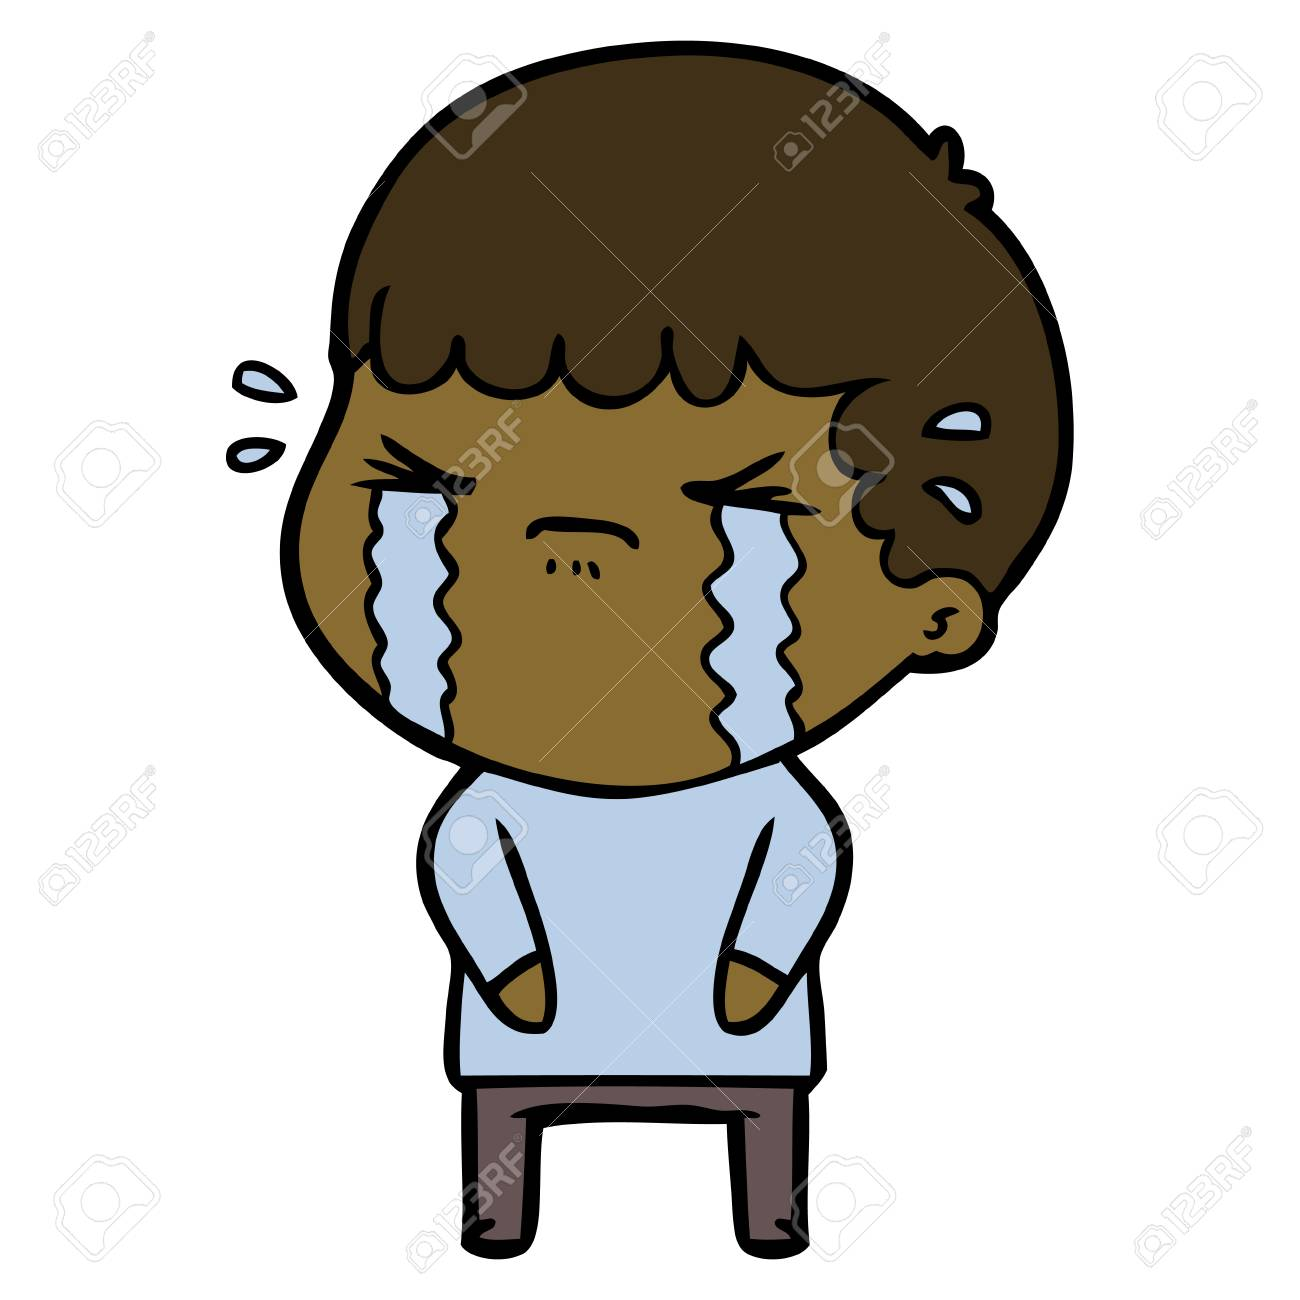 Crying and sad boy cartoon stock vector 95260703